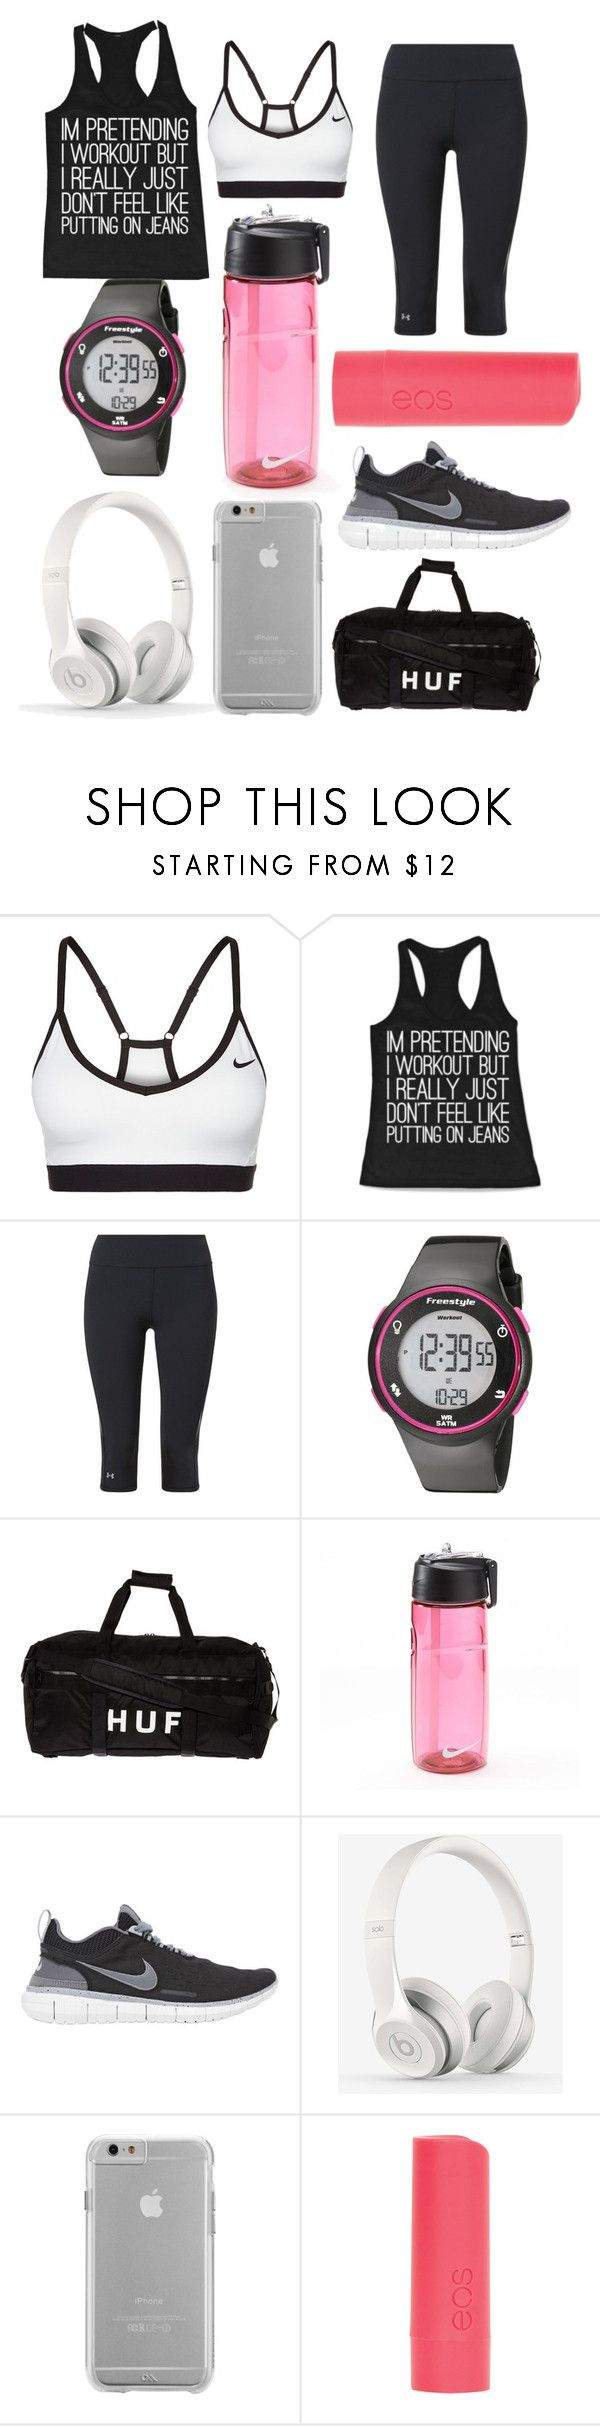 """""""Workout!"""" by tainaortiz ❤ liked on Polyvore featuring NIKE, Under Armour, Freestyle, HUF, Beats by Dr. Dre, Case-Mate, dELiA*s and plus size clothing"""